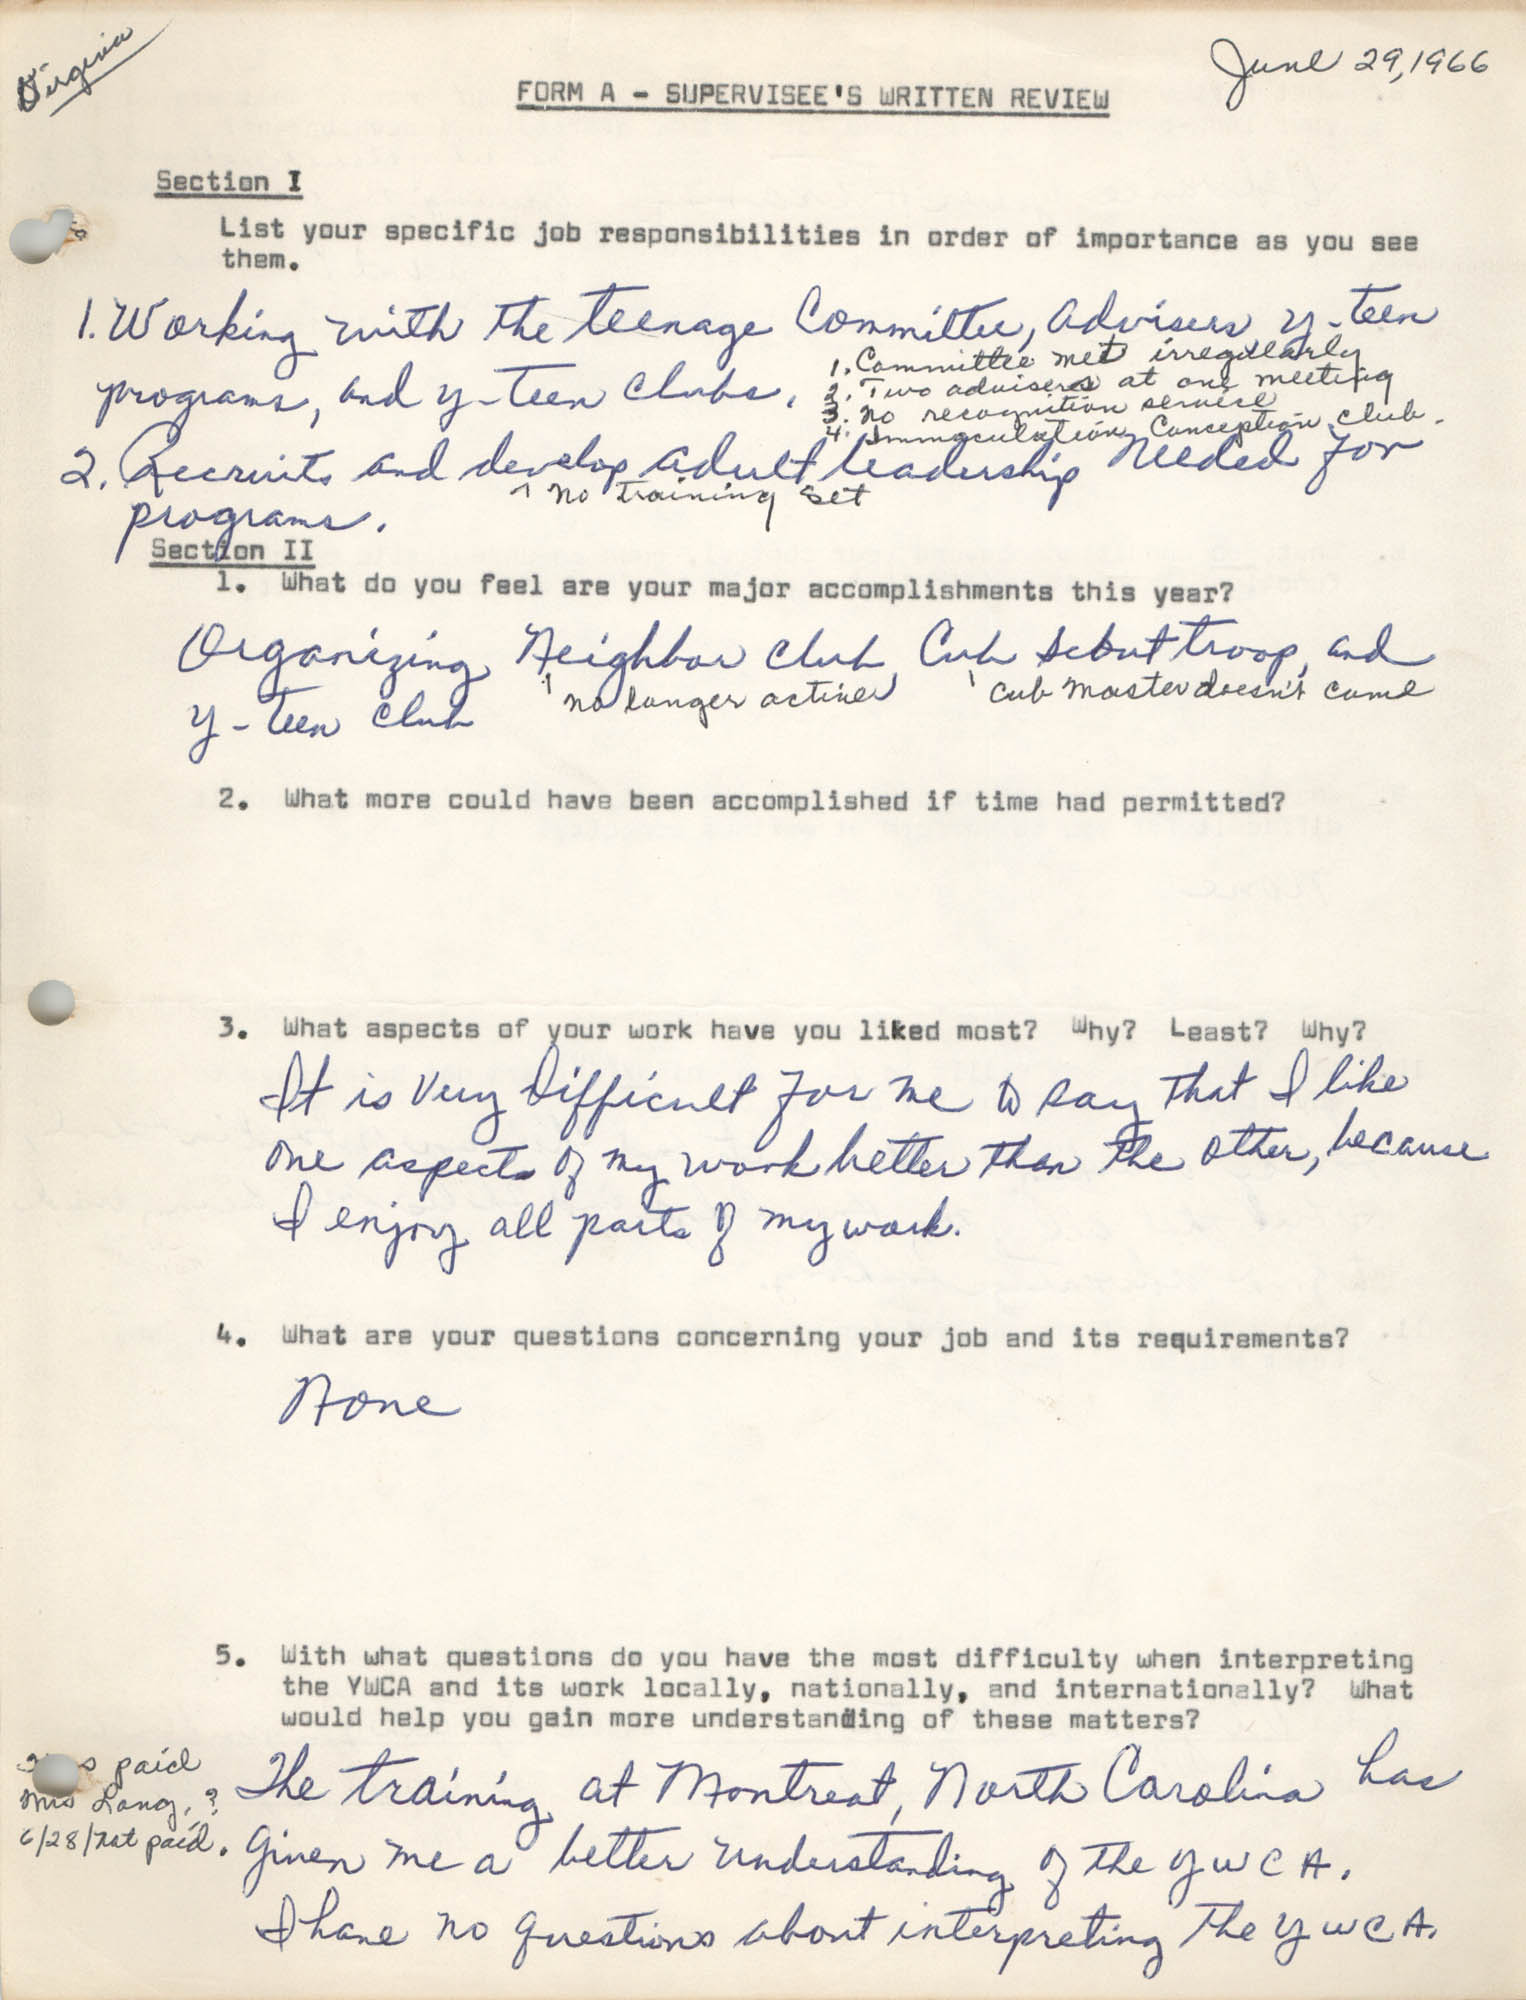 Form A –Supervisee's Written Review, June 29, 1966